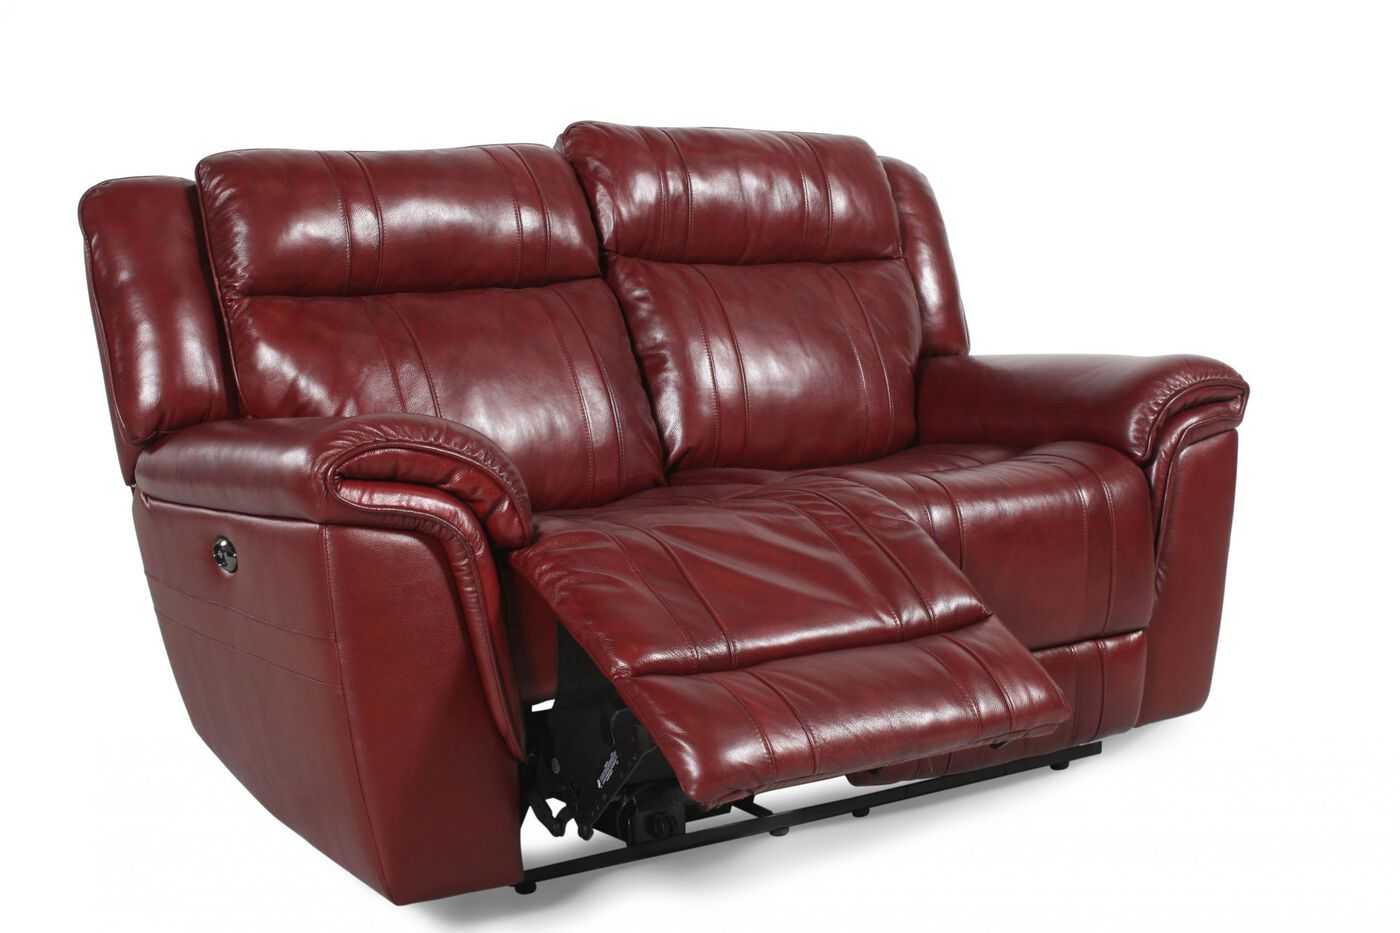 Boulevard Chili Pepper Burgundy Reclining Loveseat Mathis Brothers Furniture